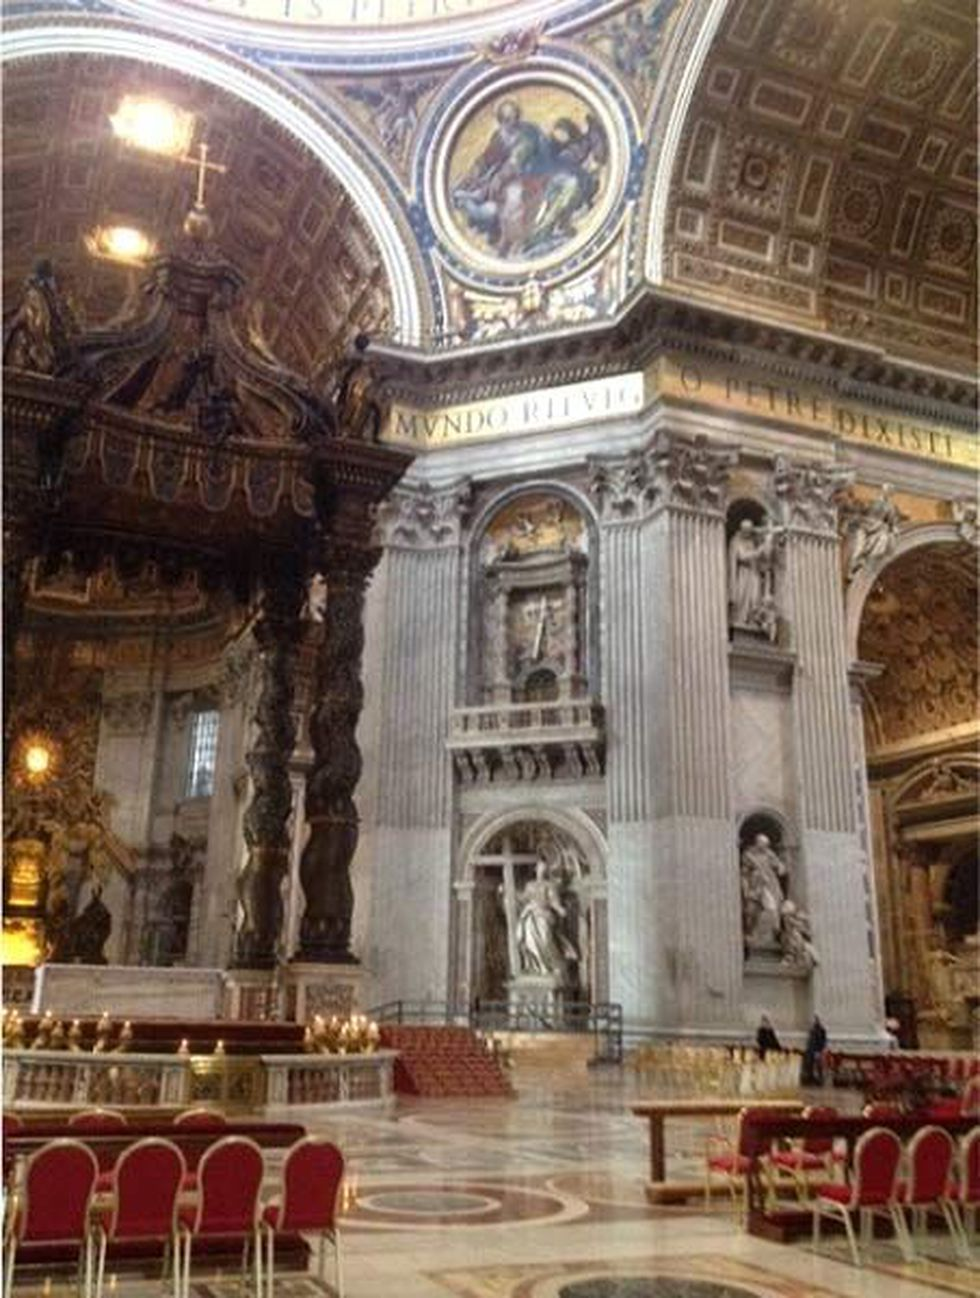 Much work was going on Tues. inside St. Peter's Basilica. Chairs were being placed throughout...